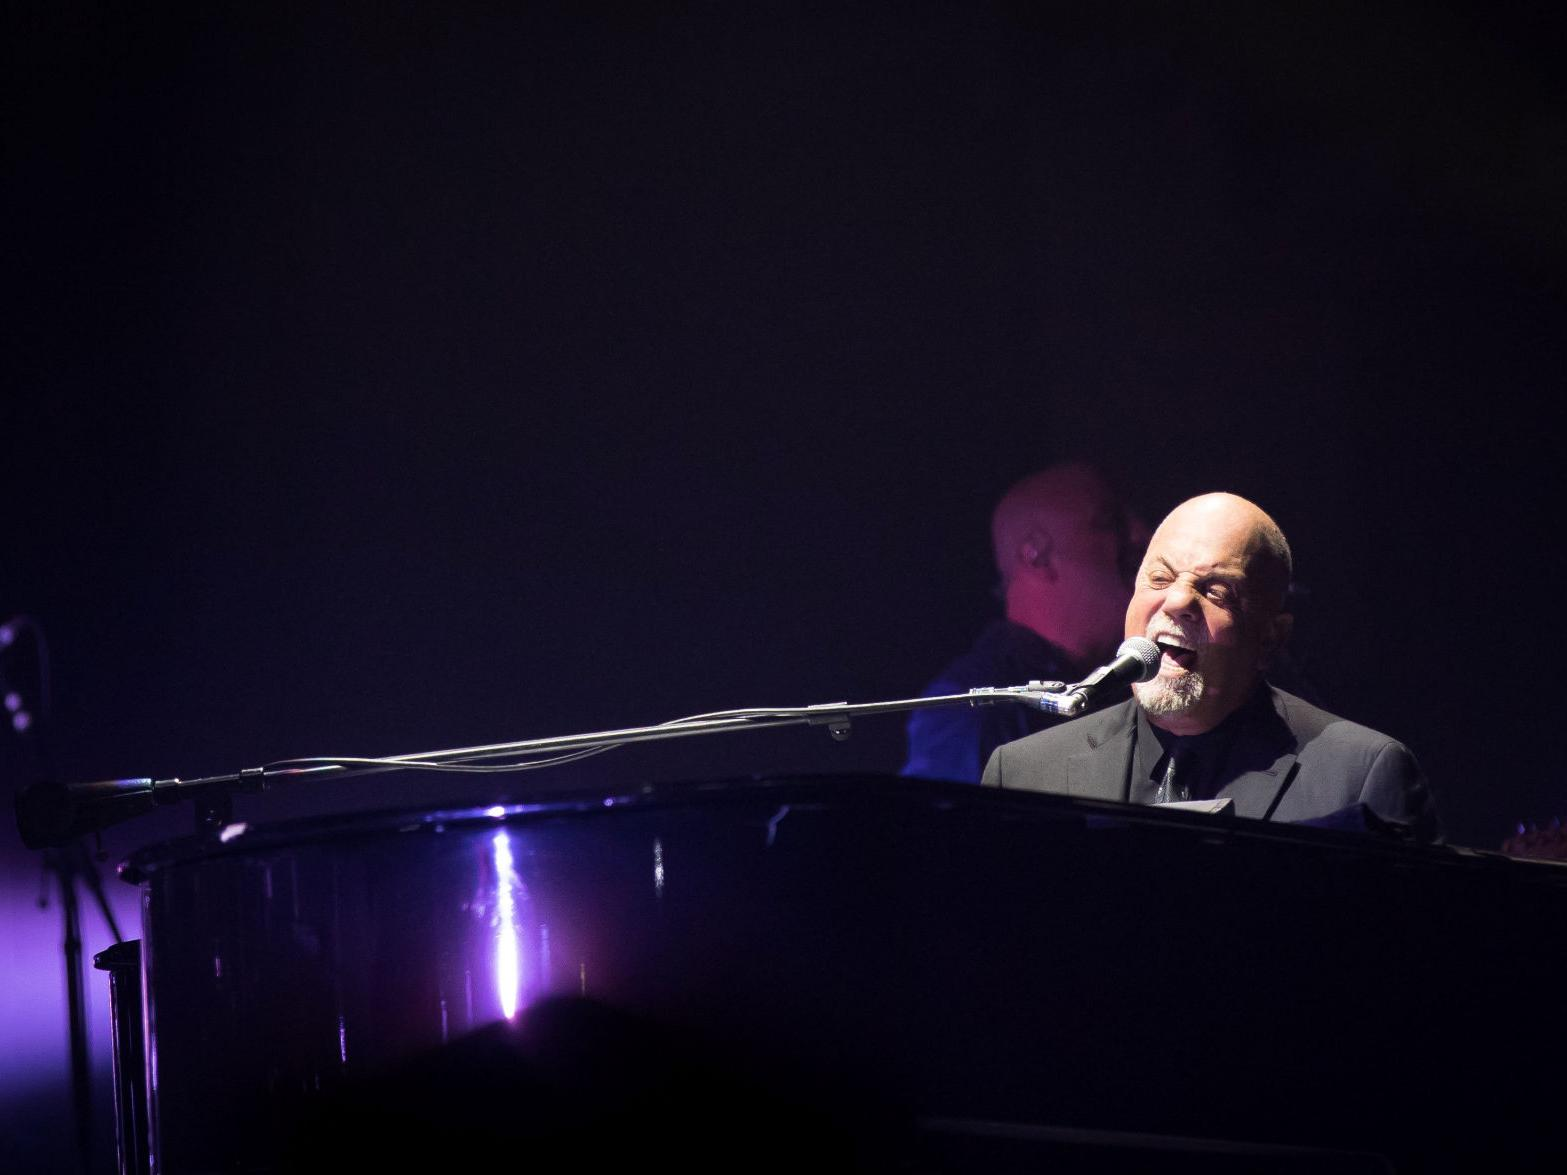 Review: Decades melt away as Billy Joel returns to Lincoln